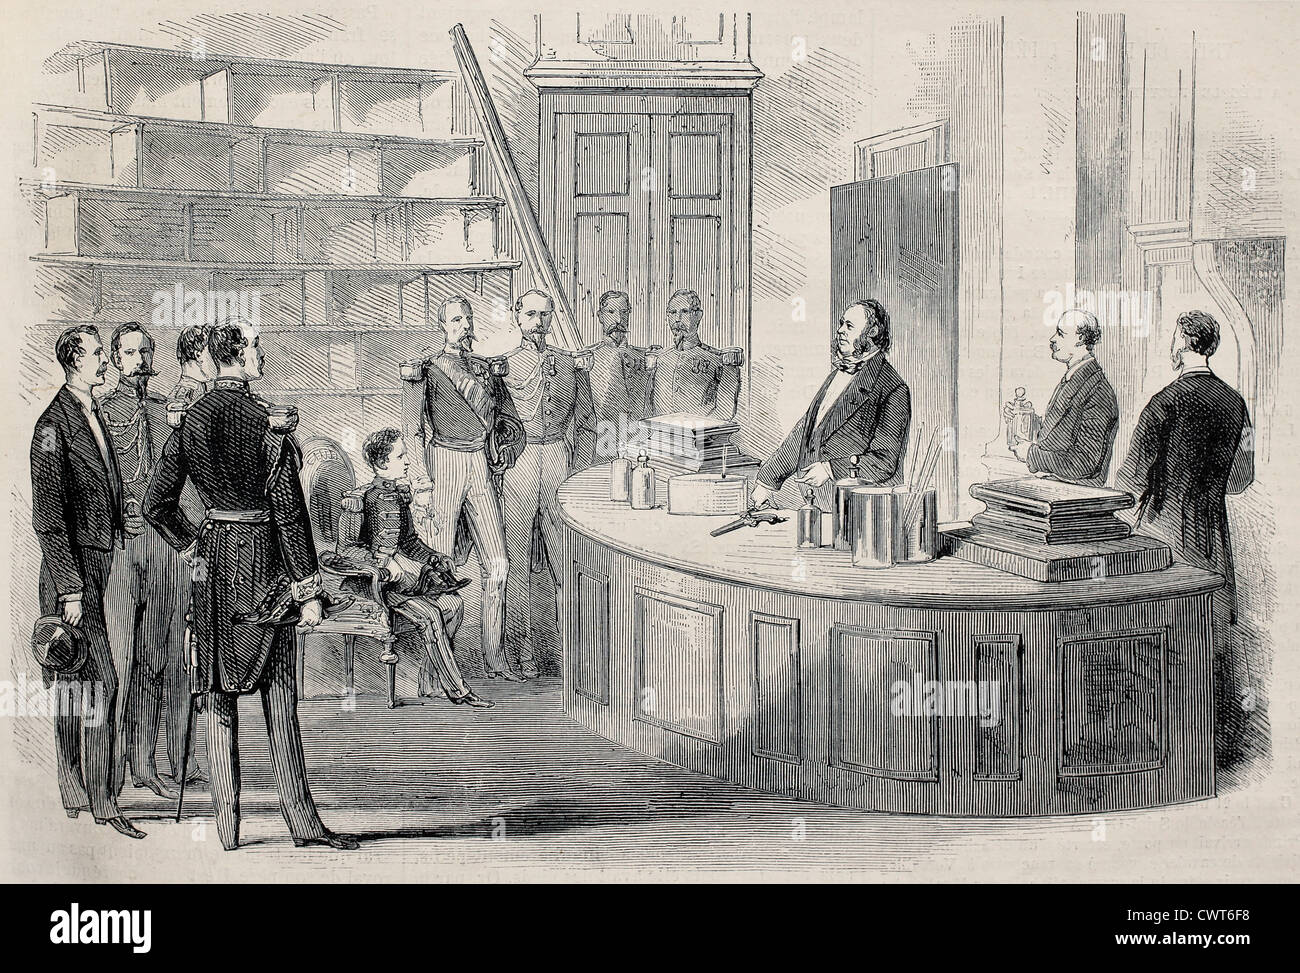 Prince Imperial visiting chemistry lab - Stock Image